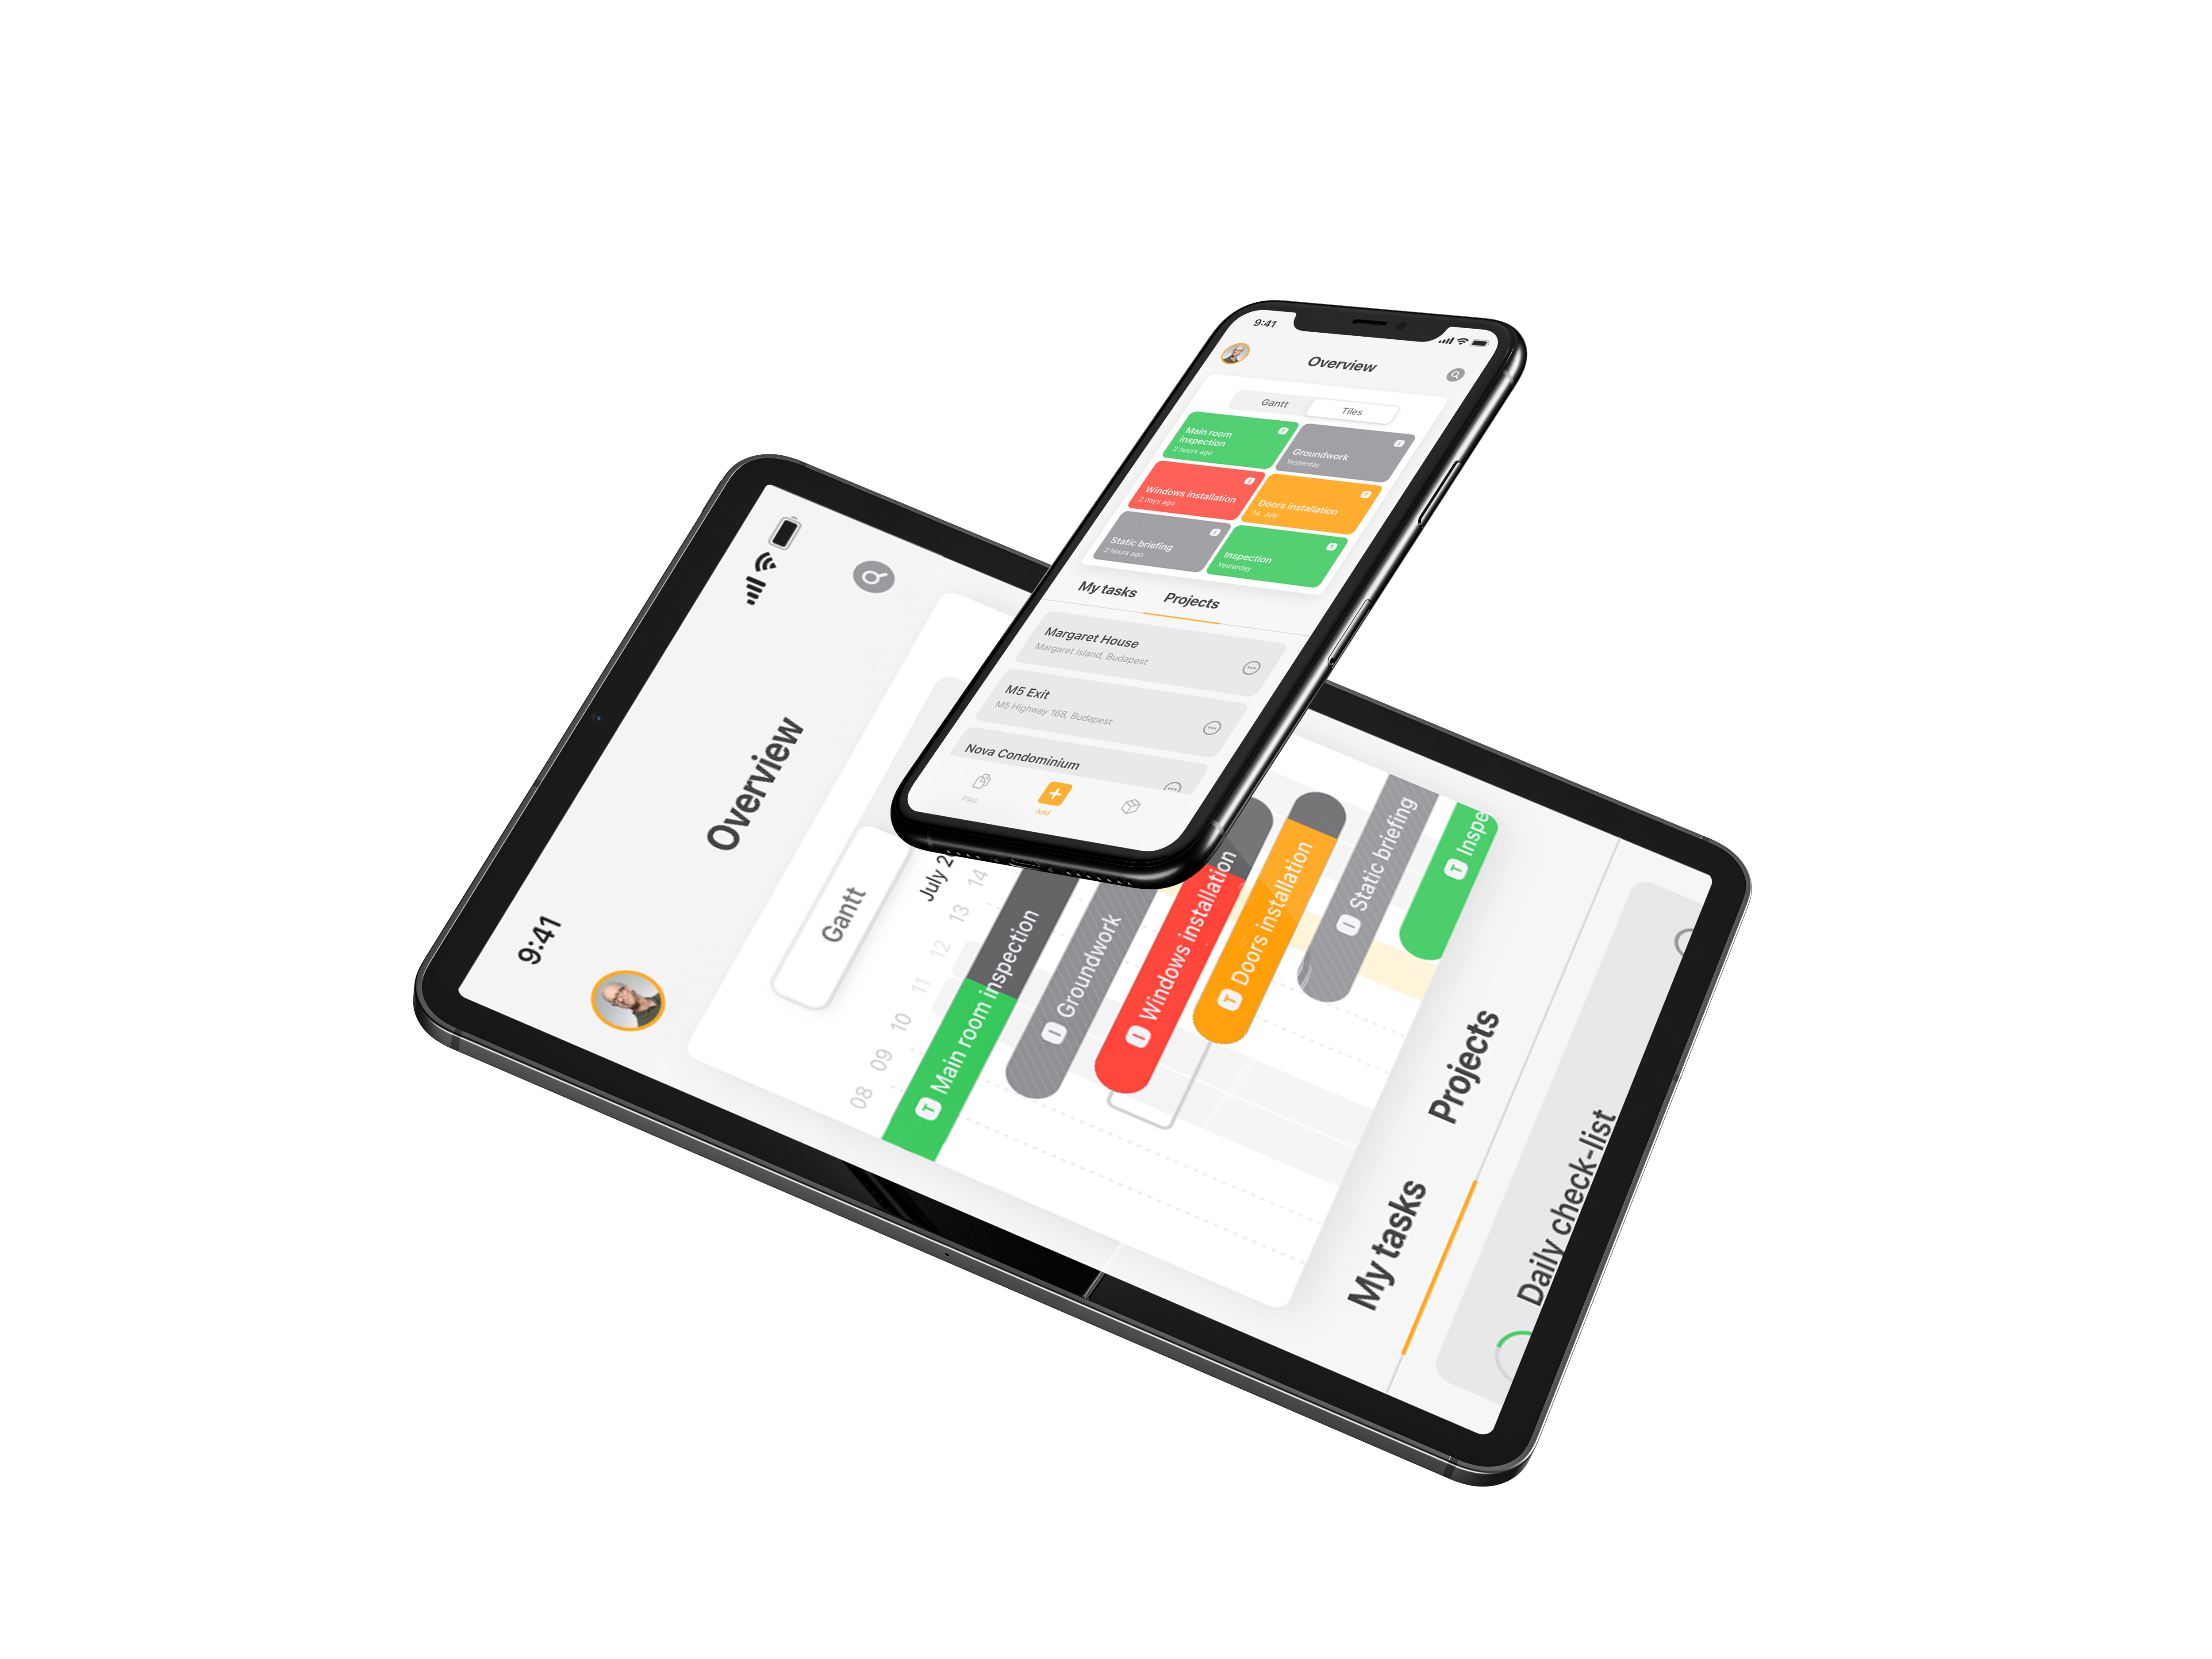 project management software task management on ipad tablet and iphone phone